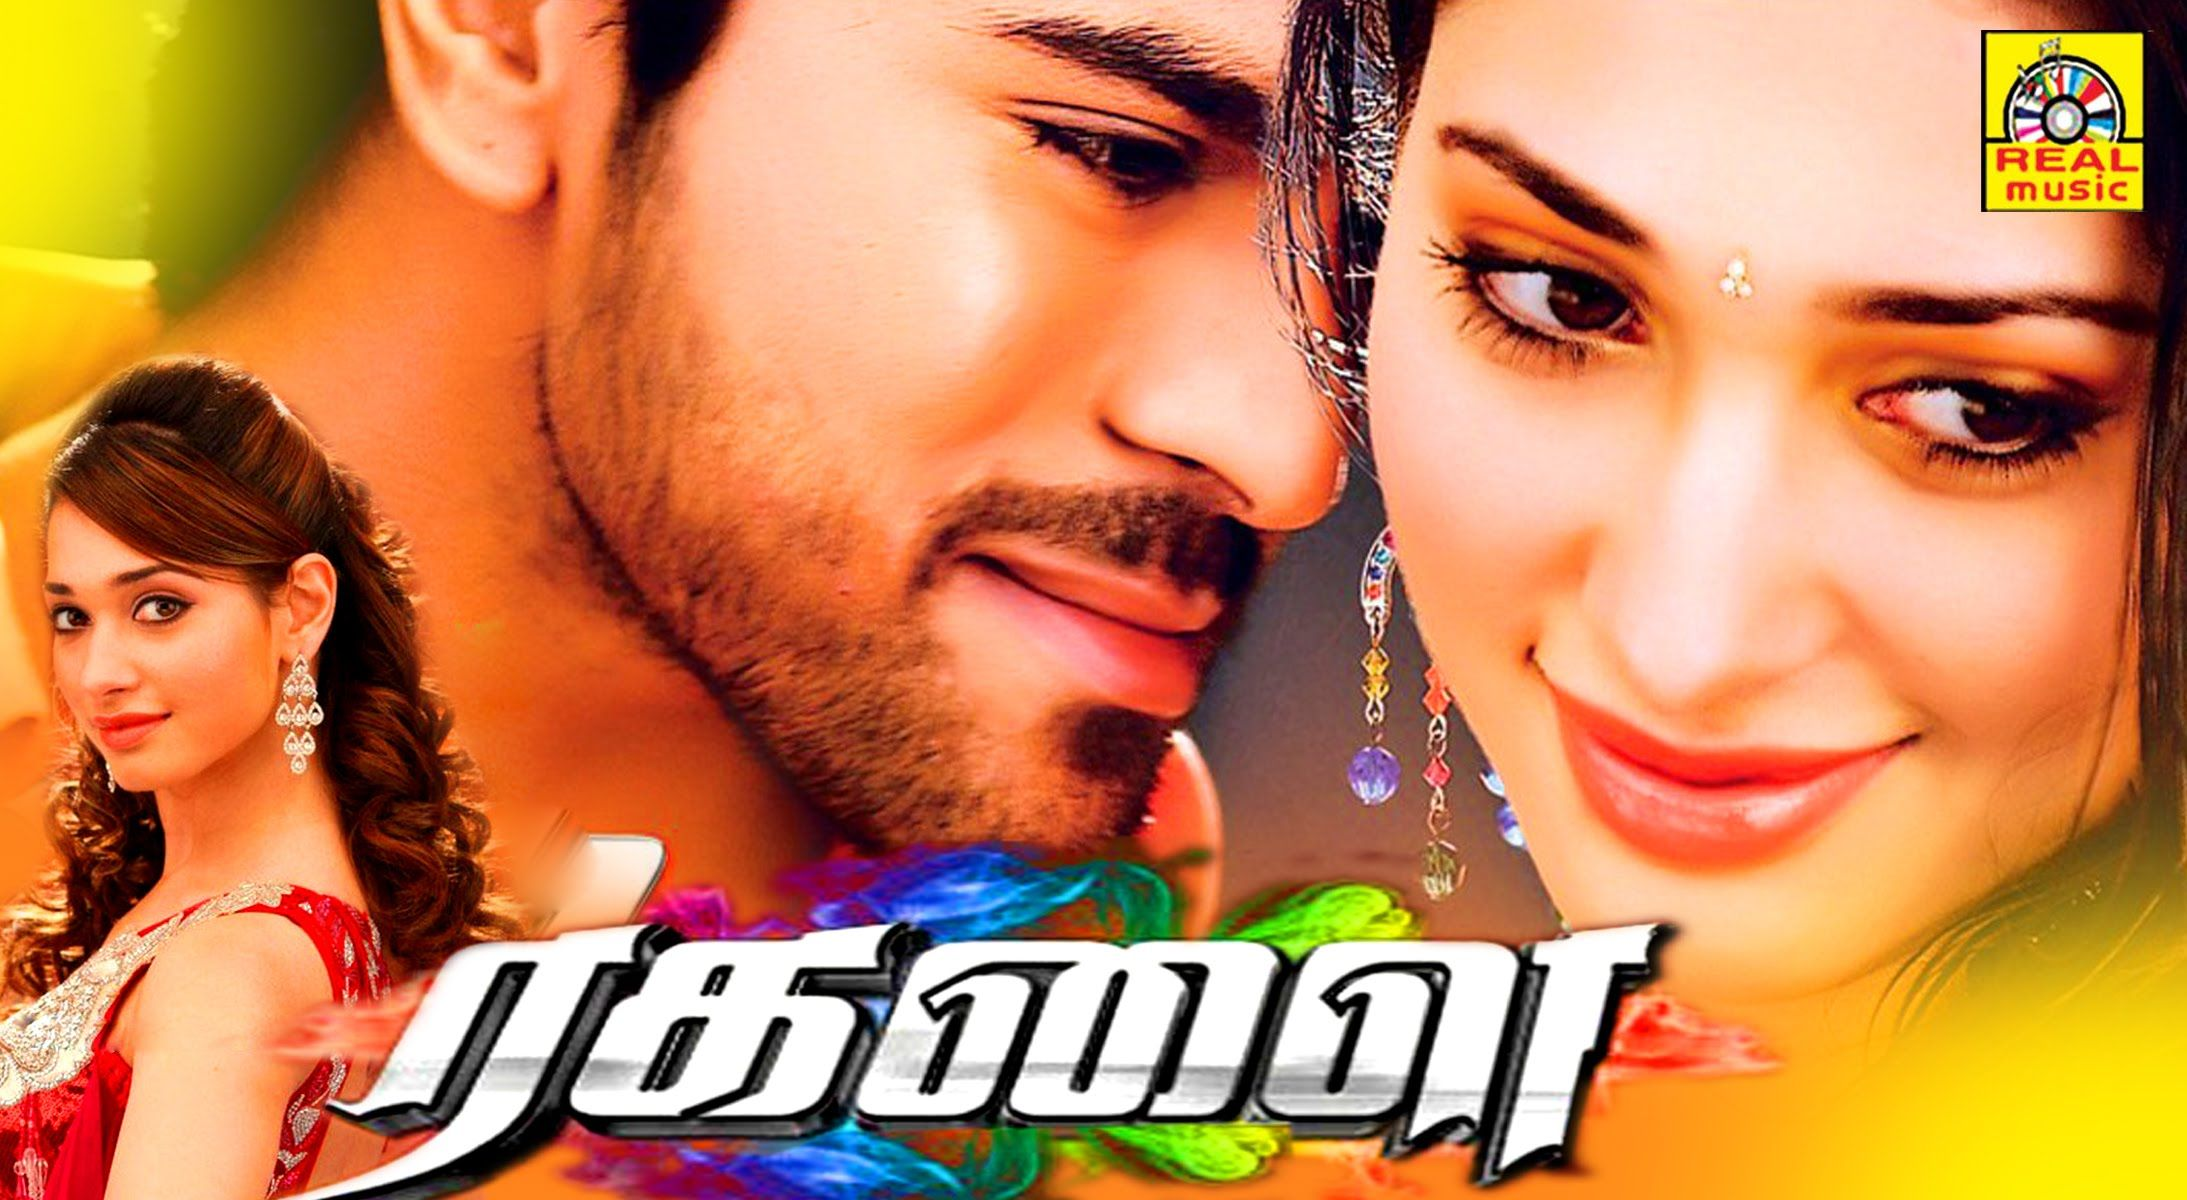 Tamil New Movie New Release Ragalai Latest Tamil Movies Hollywood Action Movies Action Movies Movies